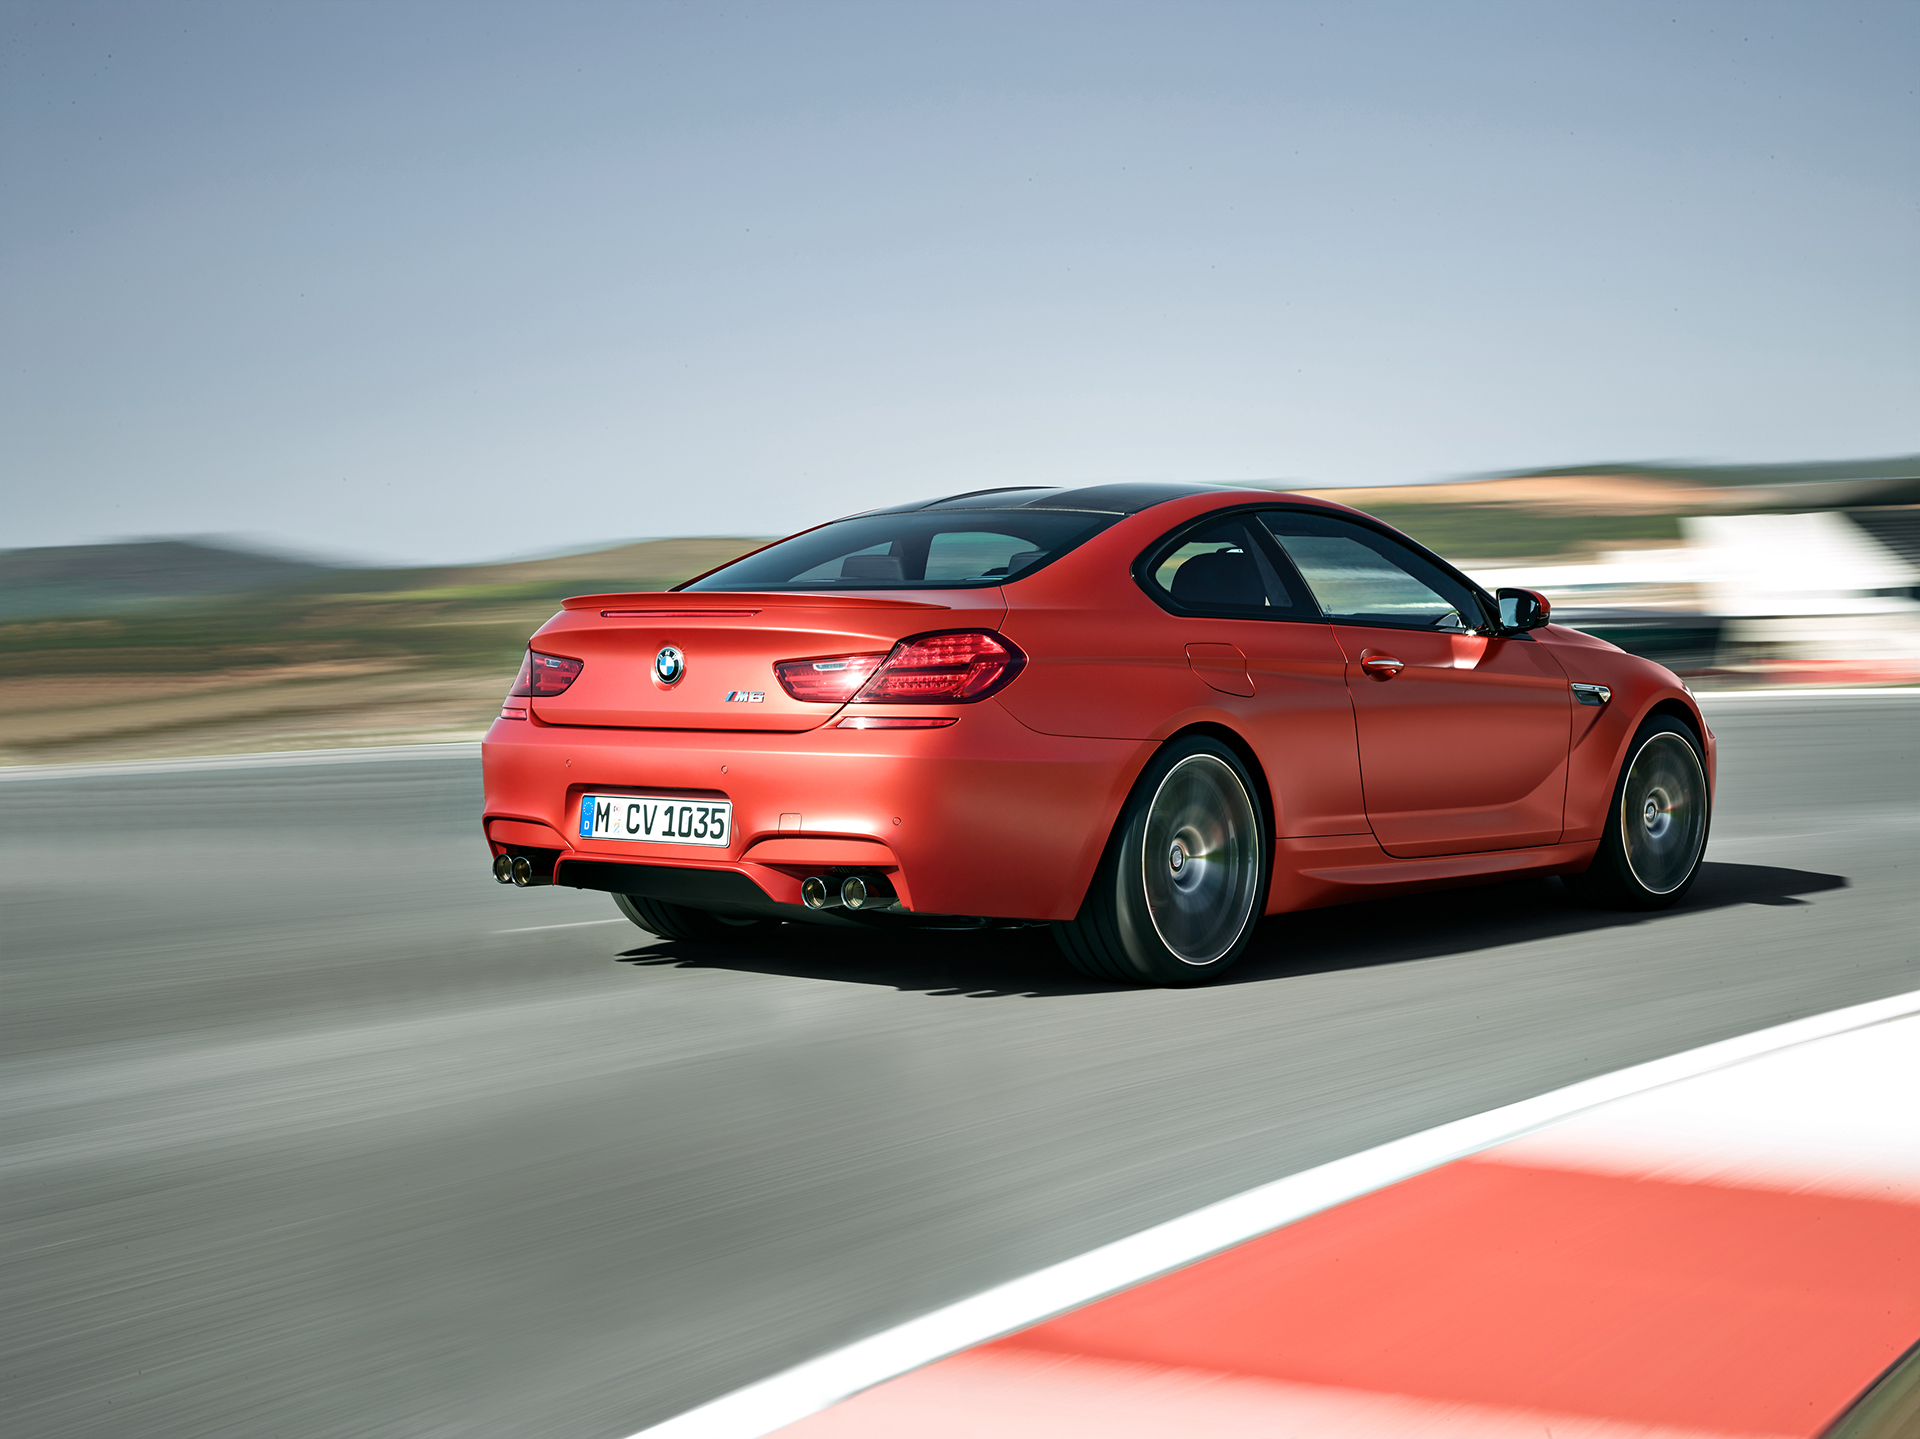 BMW M6 coupé 2015 - on track / sur circuit